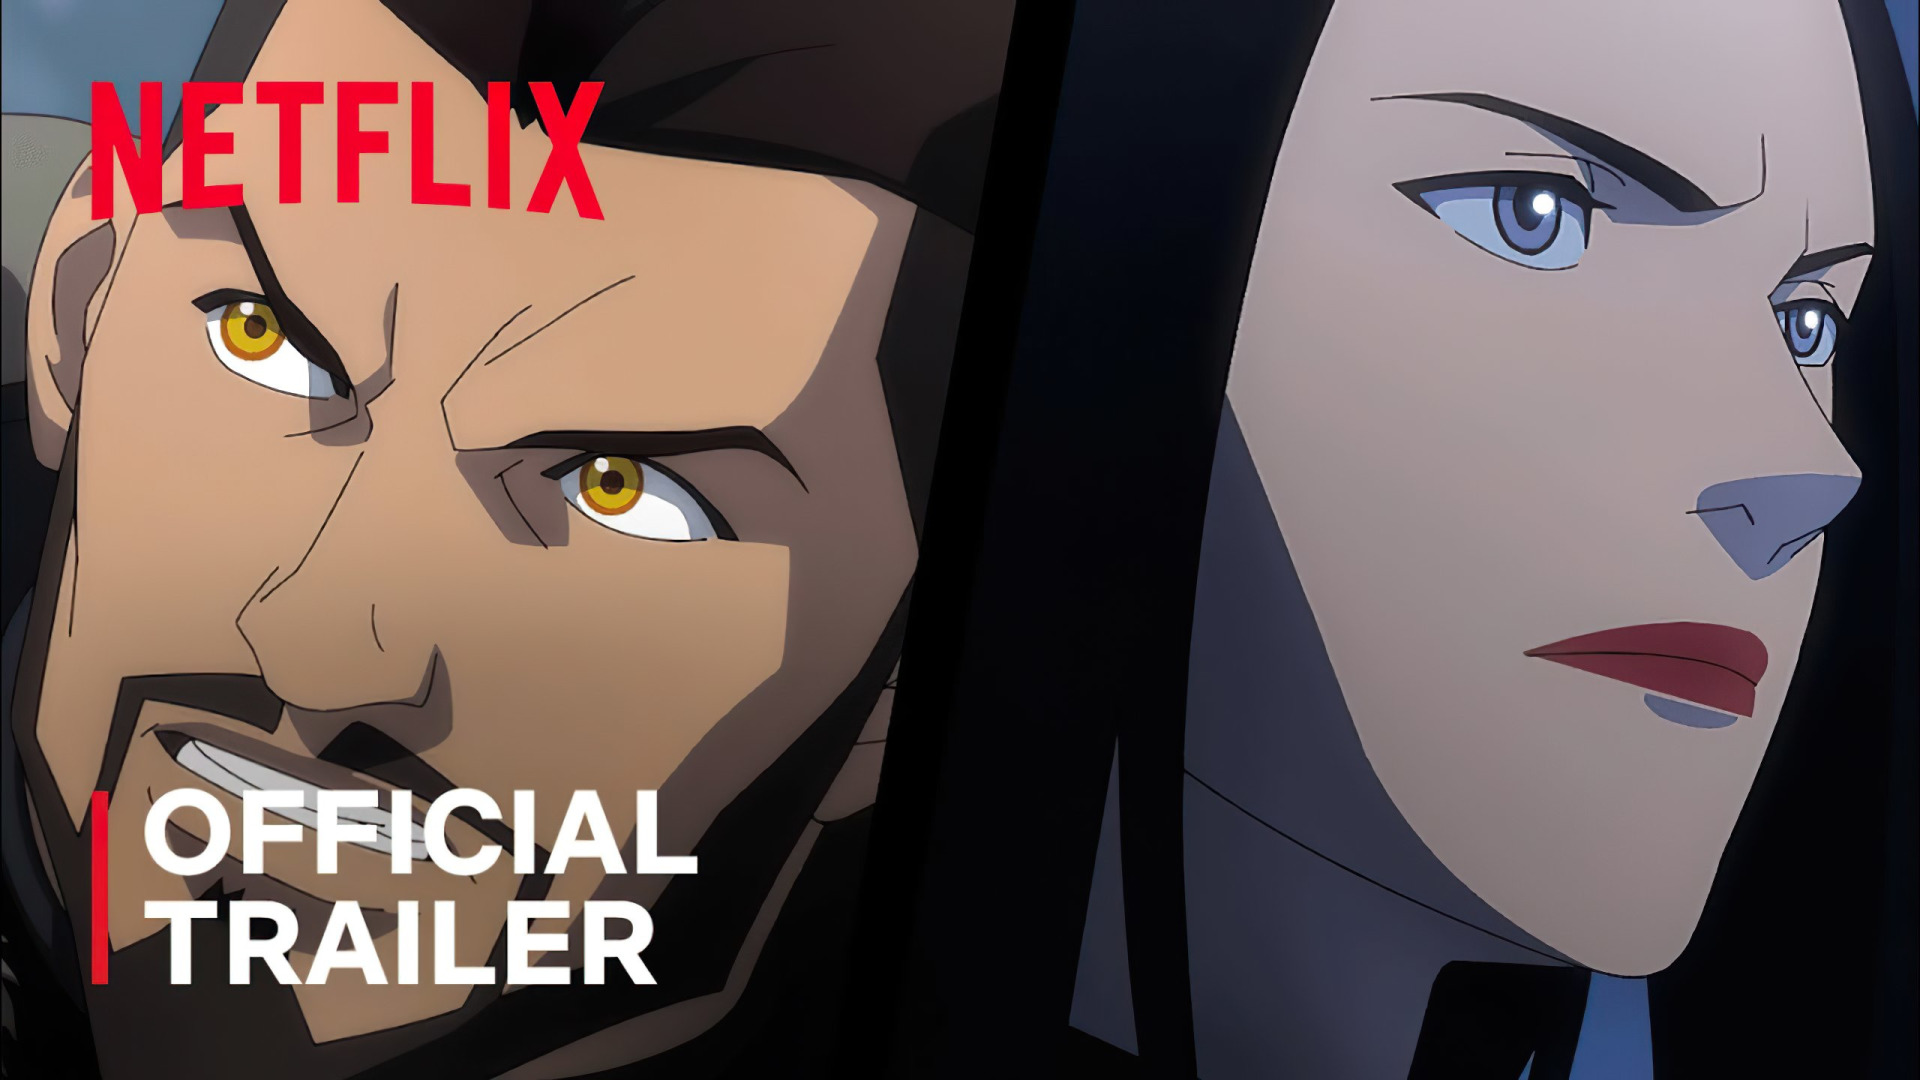 Trailer, Streaming, Netflix, Filme, The Witcher, Nightmare of the Wolf, Animationsfilm, The Witcher: Nightmare of the Wolf